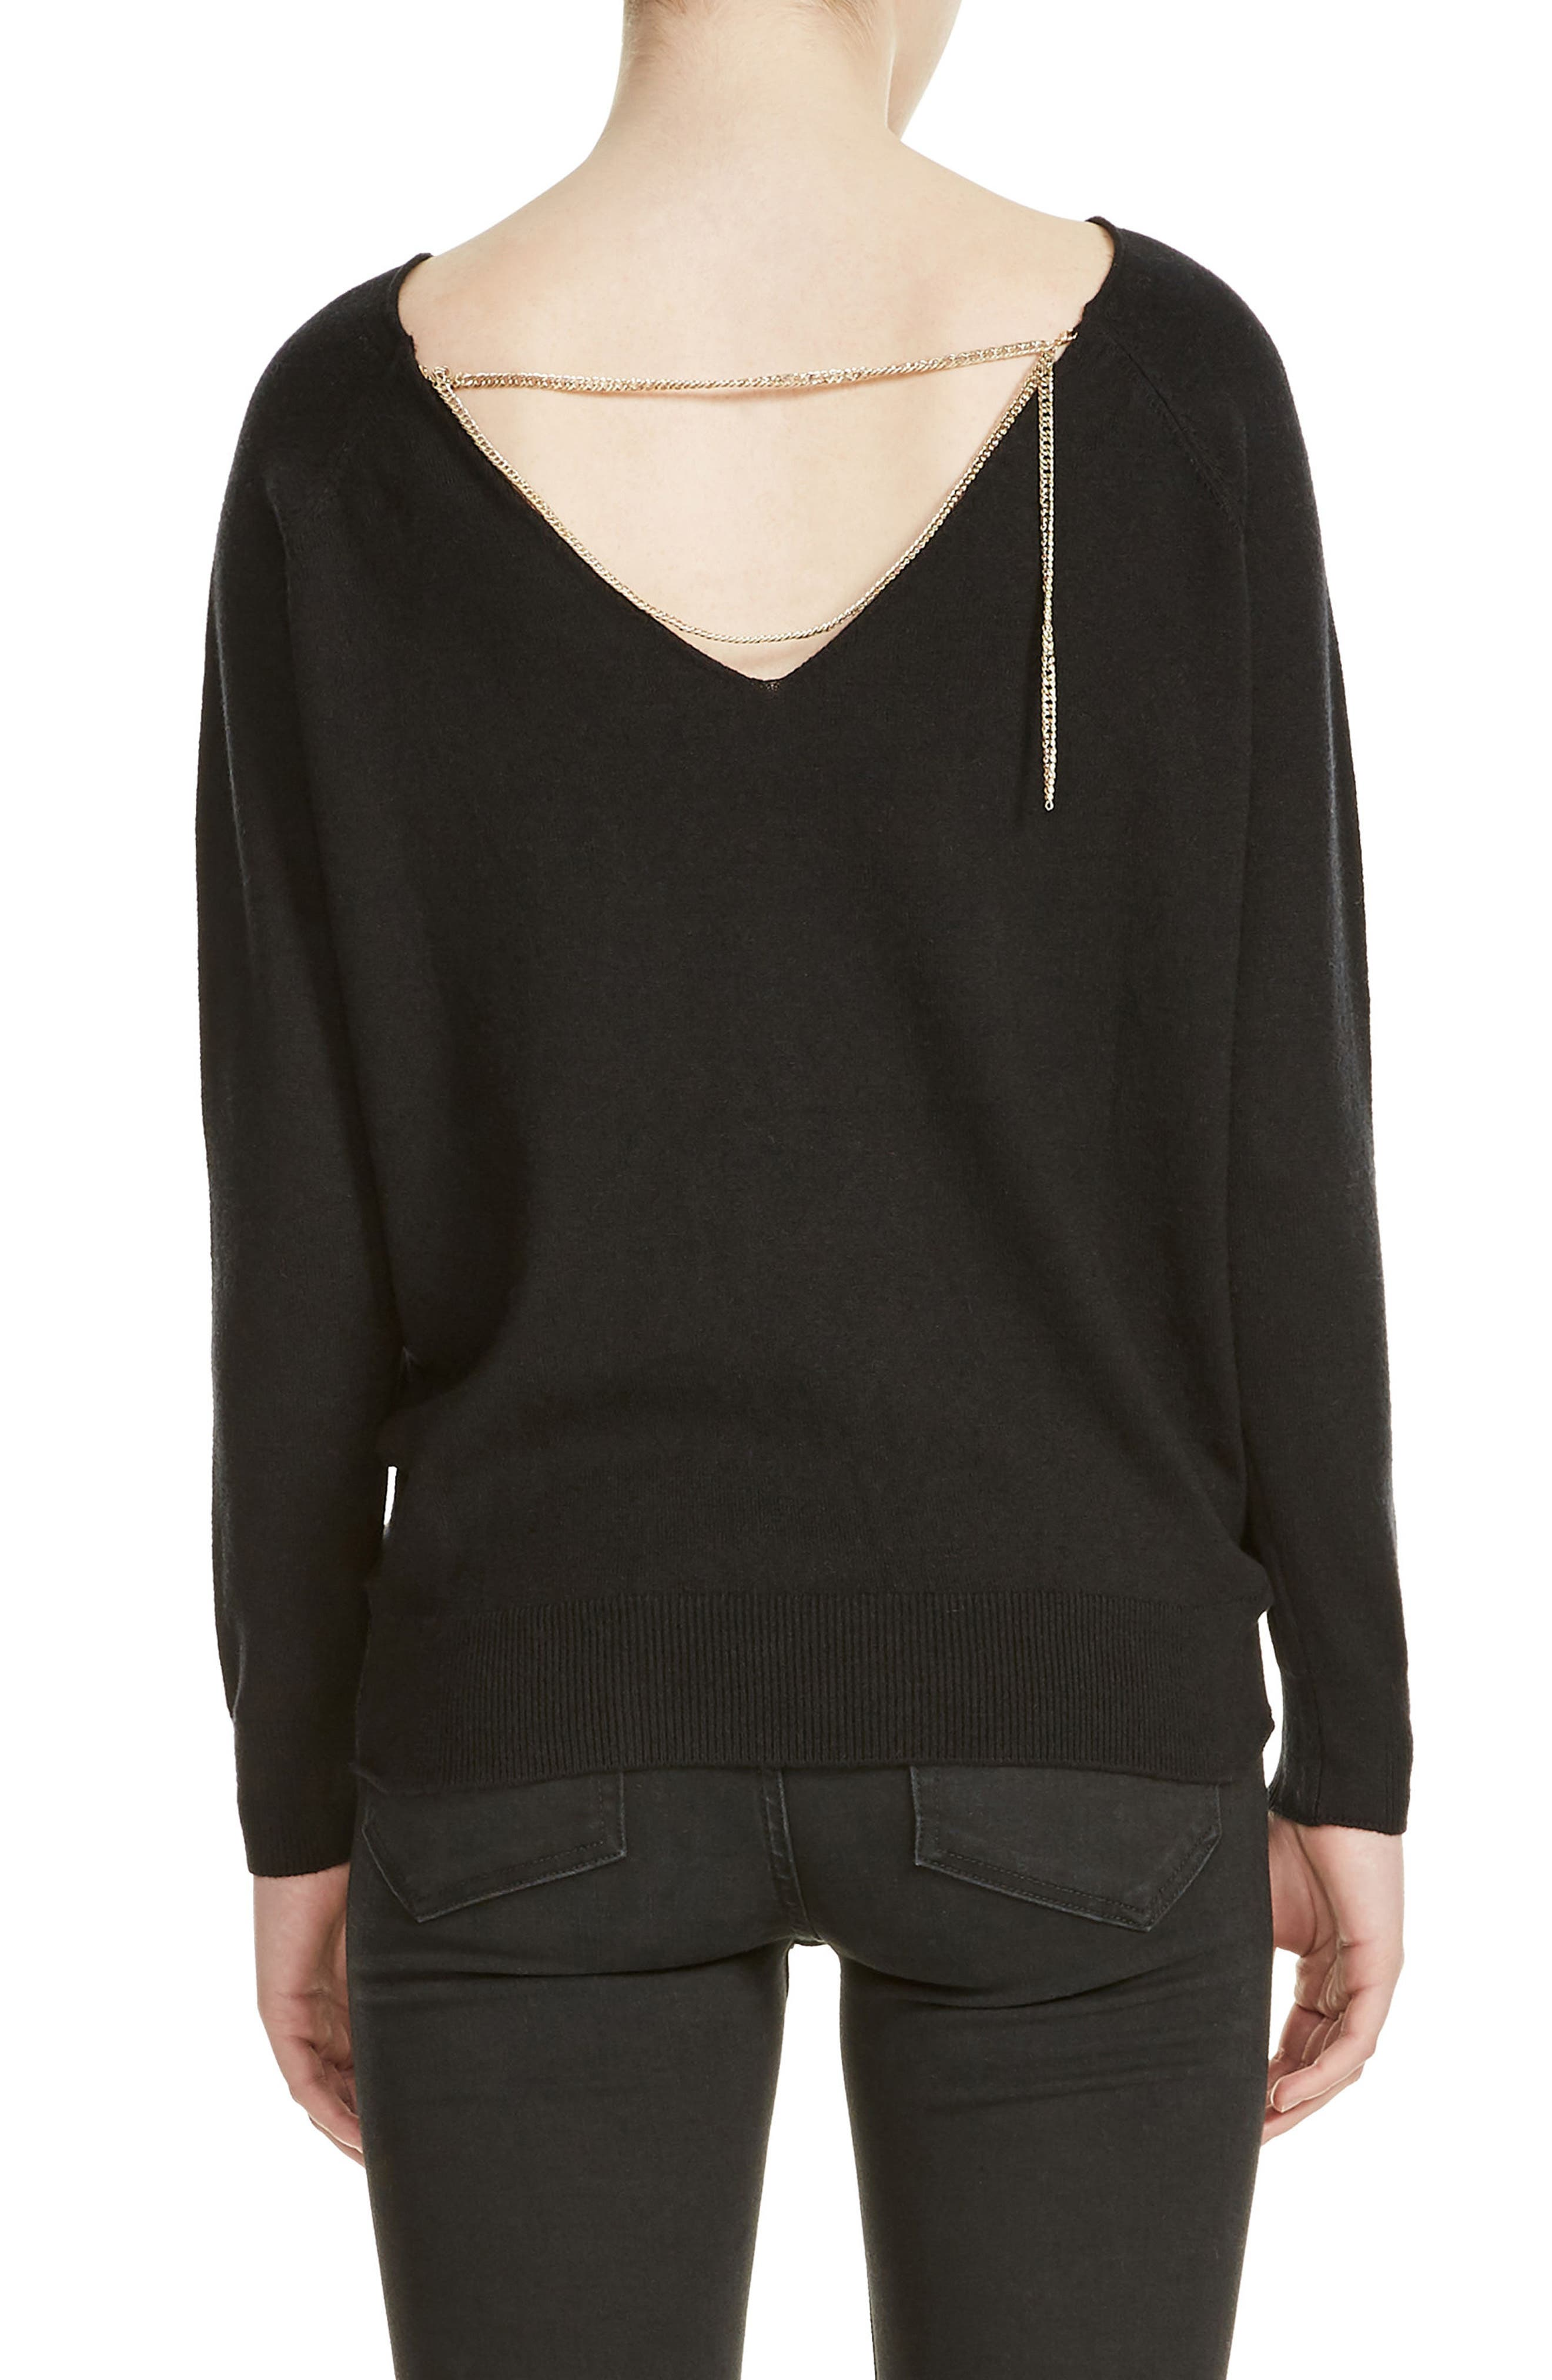 Macademia Chain Back Sweater,                             Alternate thumbnail 2, color,                             Black